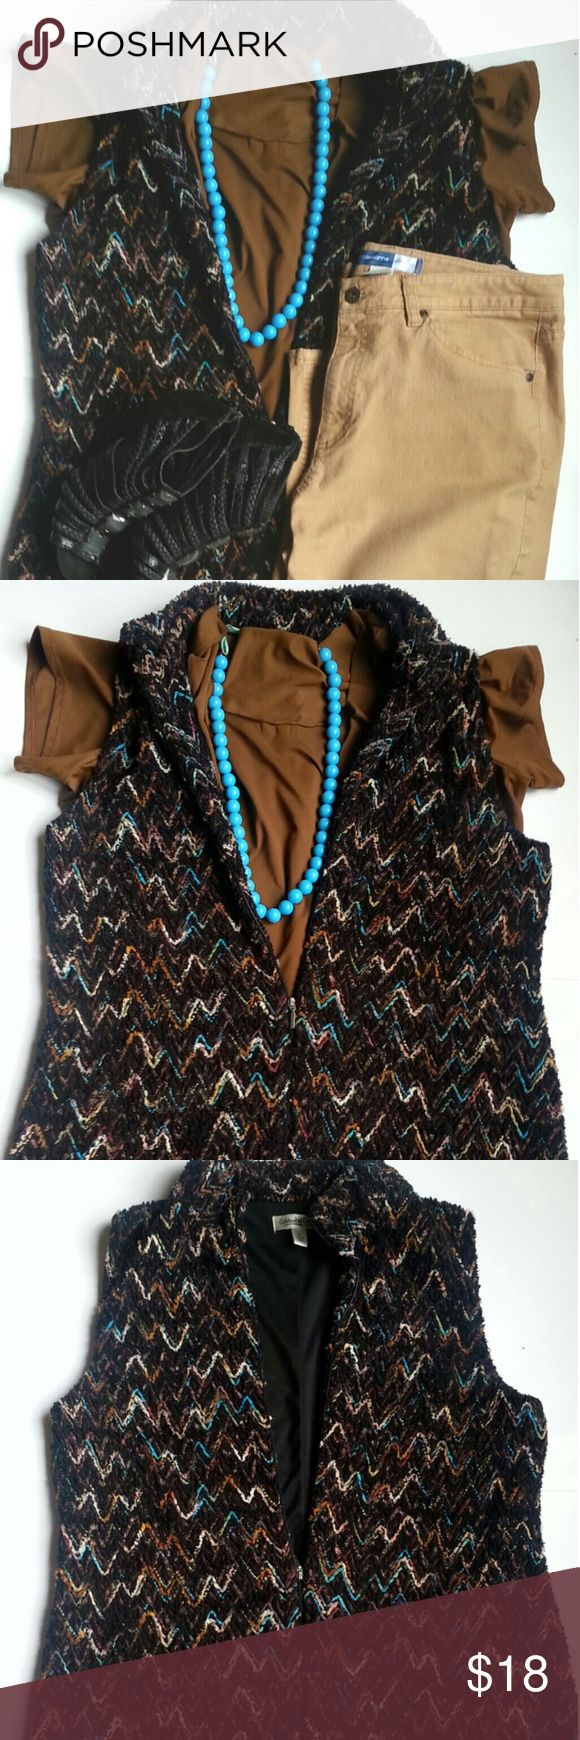 XL Coldwater Creek vest. This is 60% polyester vest has great texture. The shades of tan, brown, light blue, pink and green zigzag lines creates a stylishvpiece of wearable art. Coldwater Creek Jackets & Coats Vests